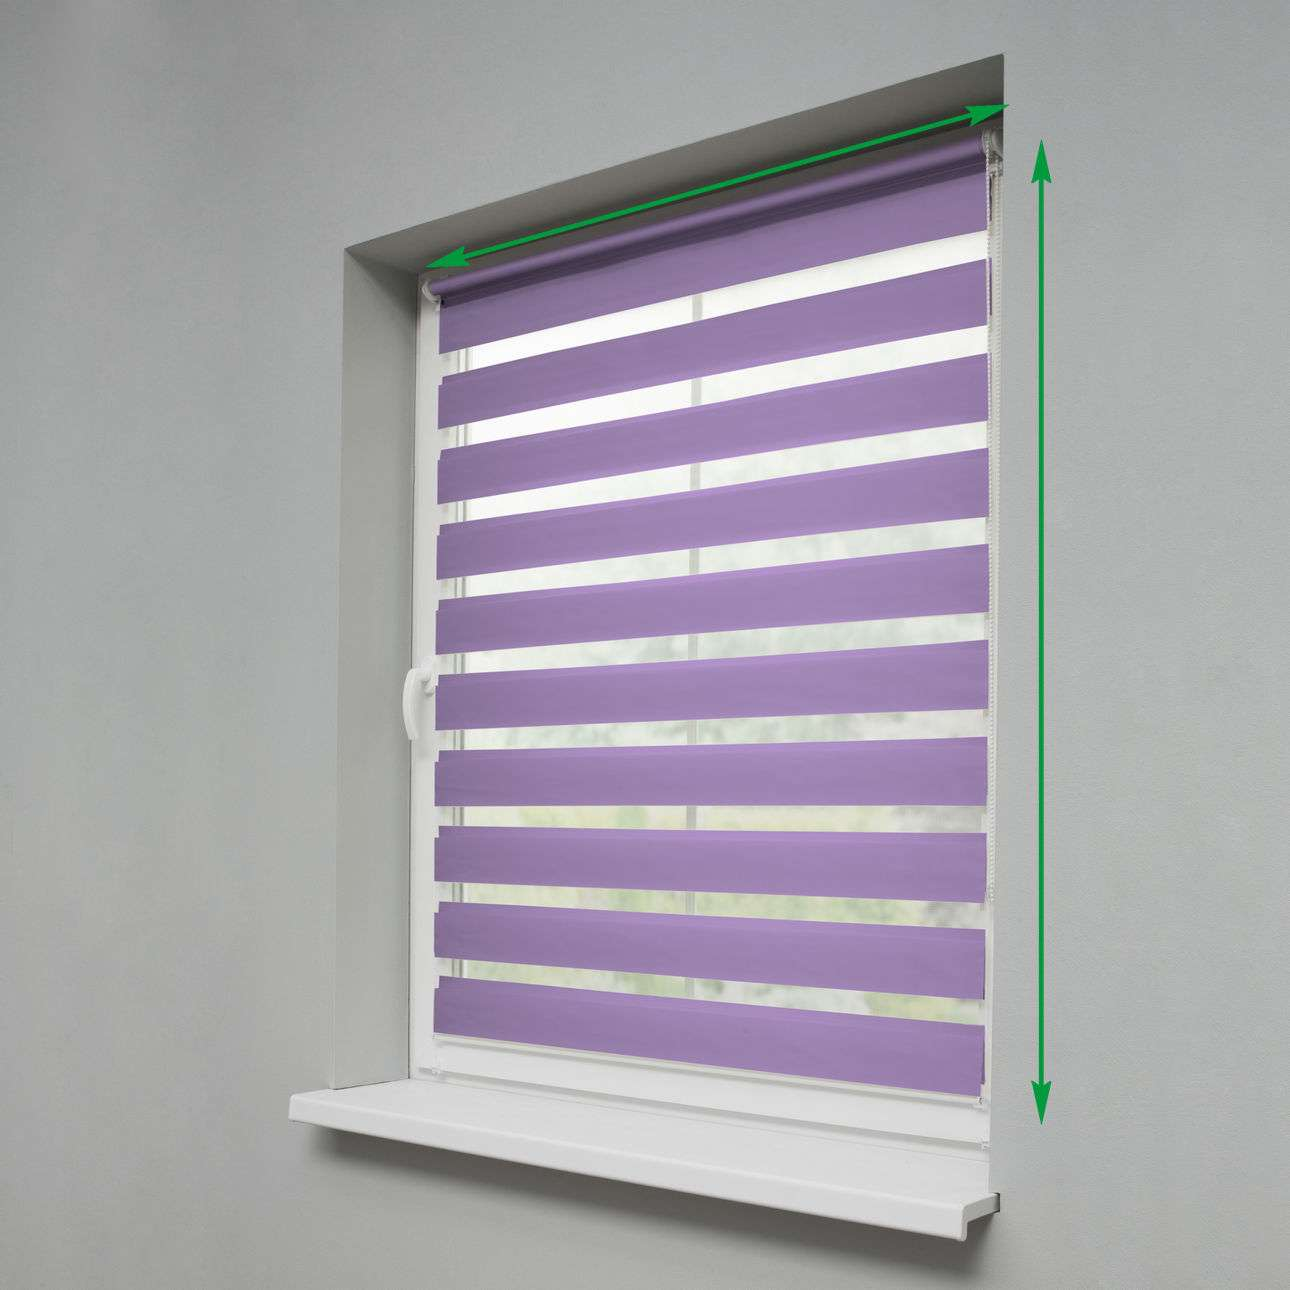 Mini Day & Night Venetian roller blind (compact design for fitting inside window recess) in collection Roller blinds Day & Night (Venetian blind), fabric: 0109